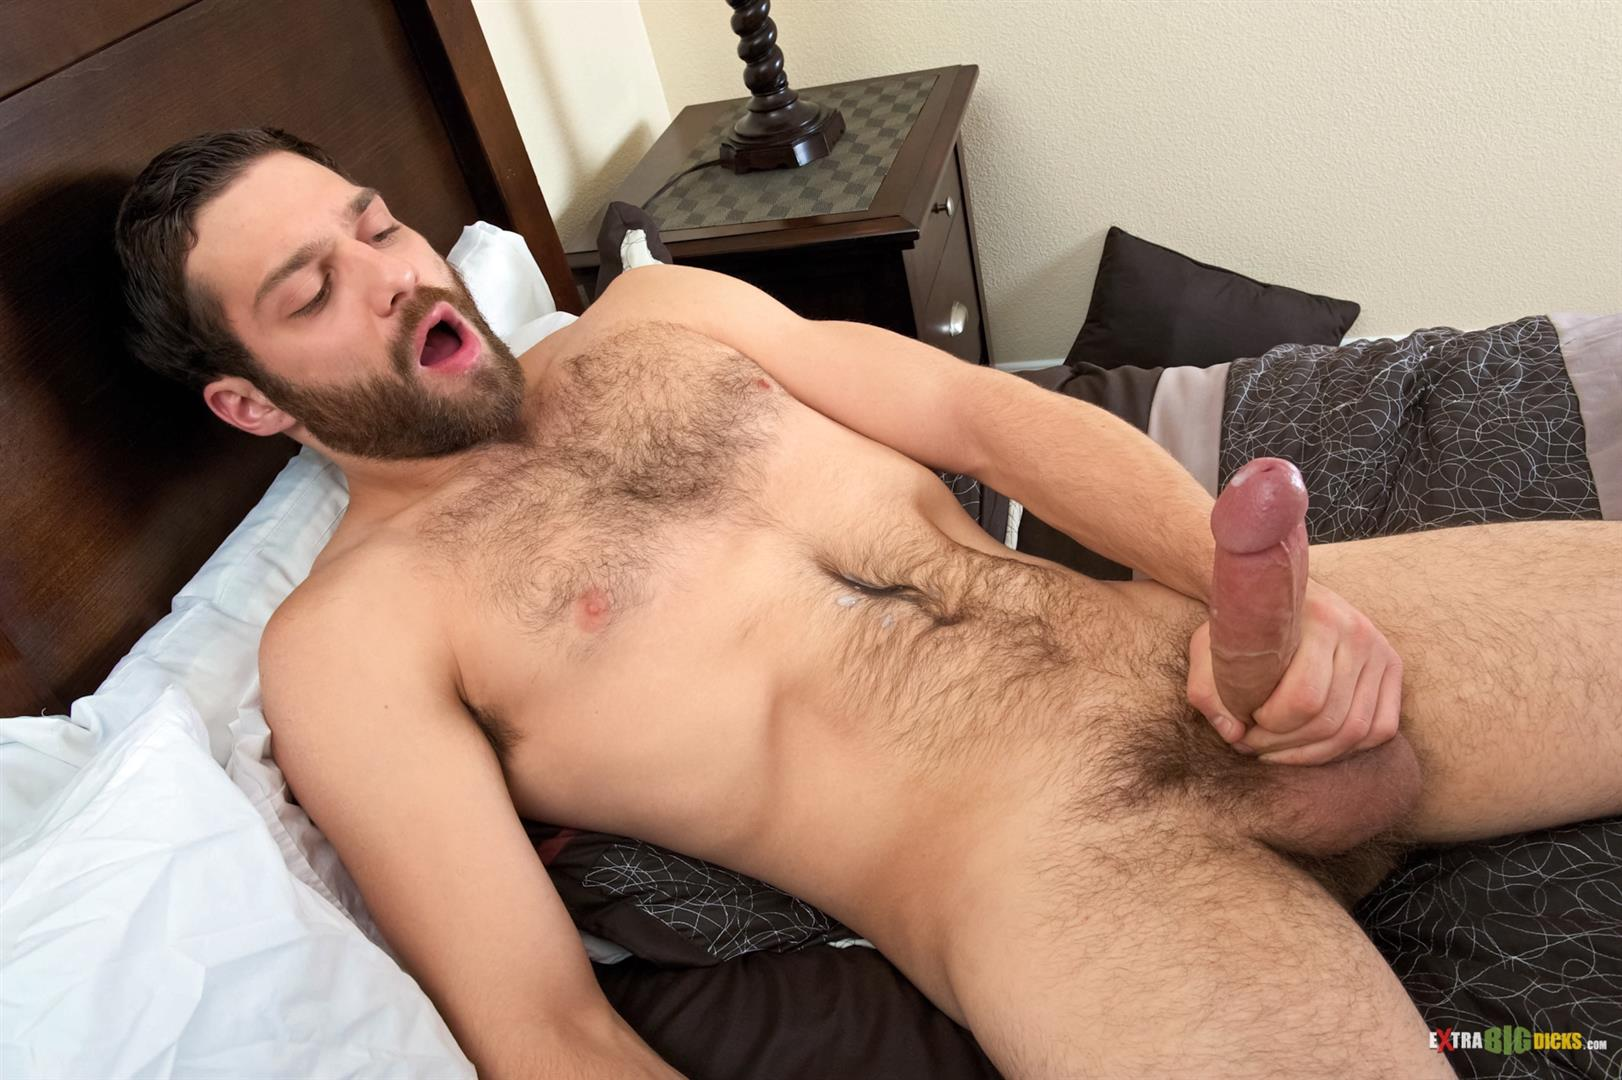 Using an anal speculum on gay